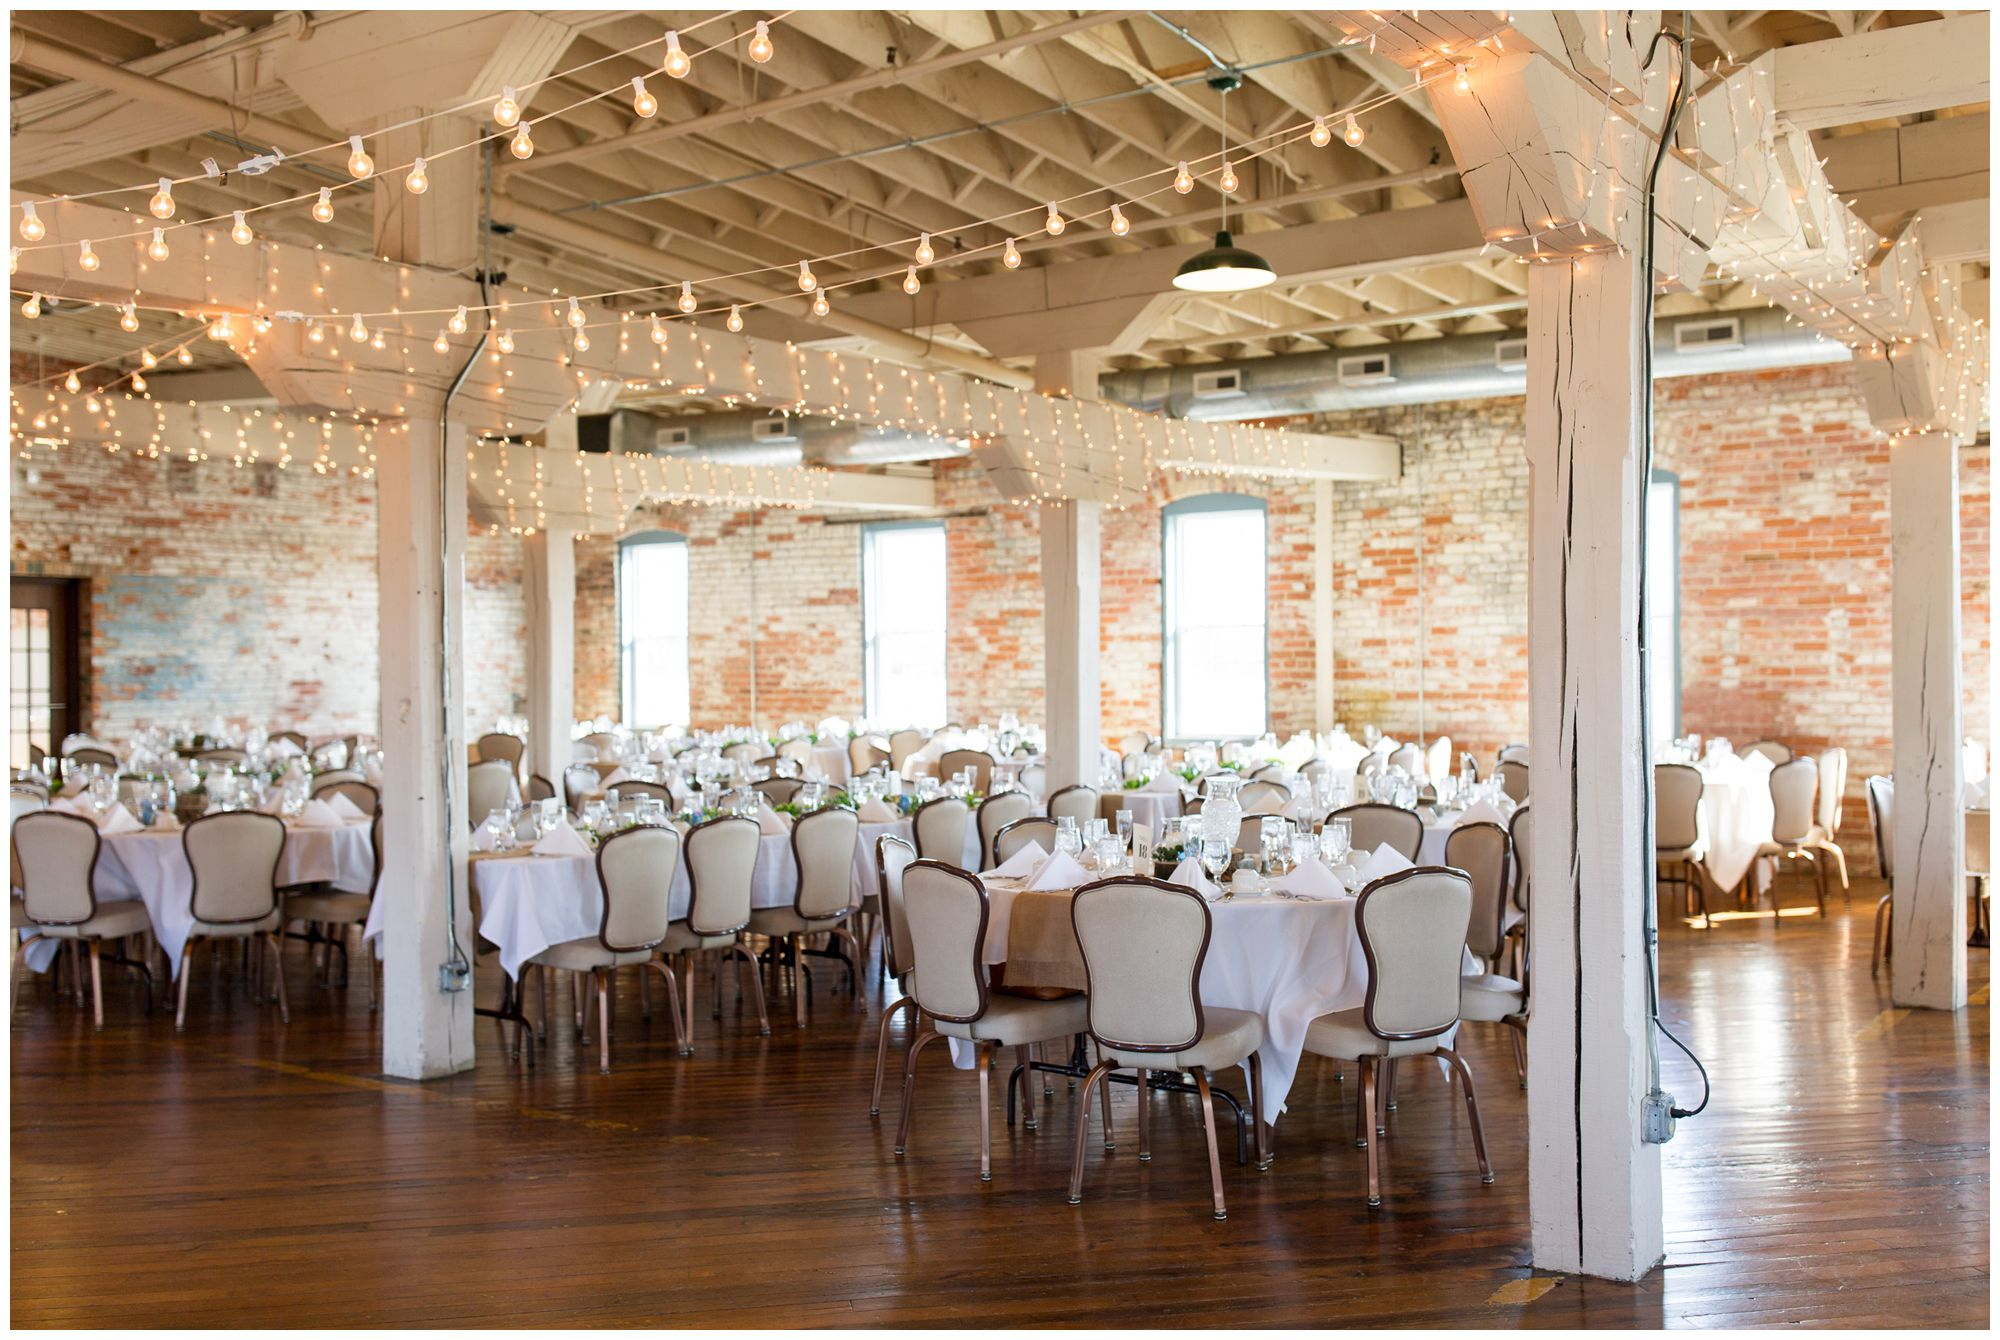 Bread & Chocolate industrial wedding reception